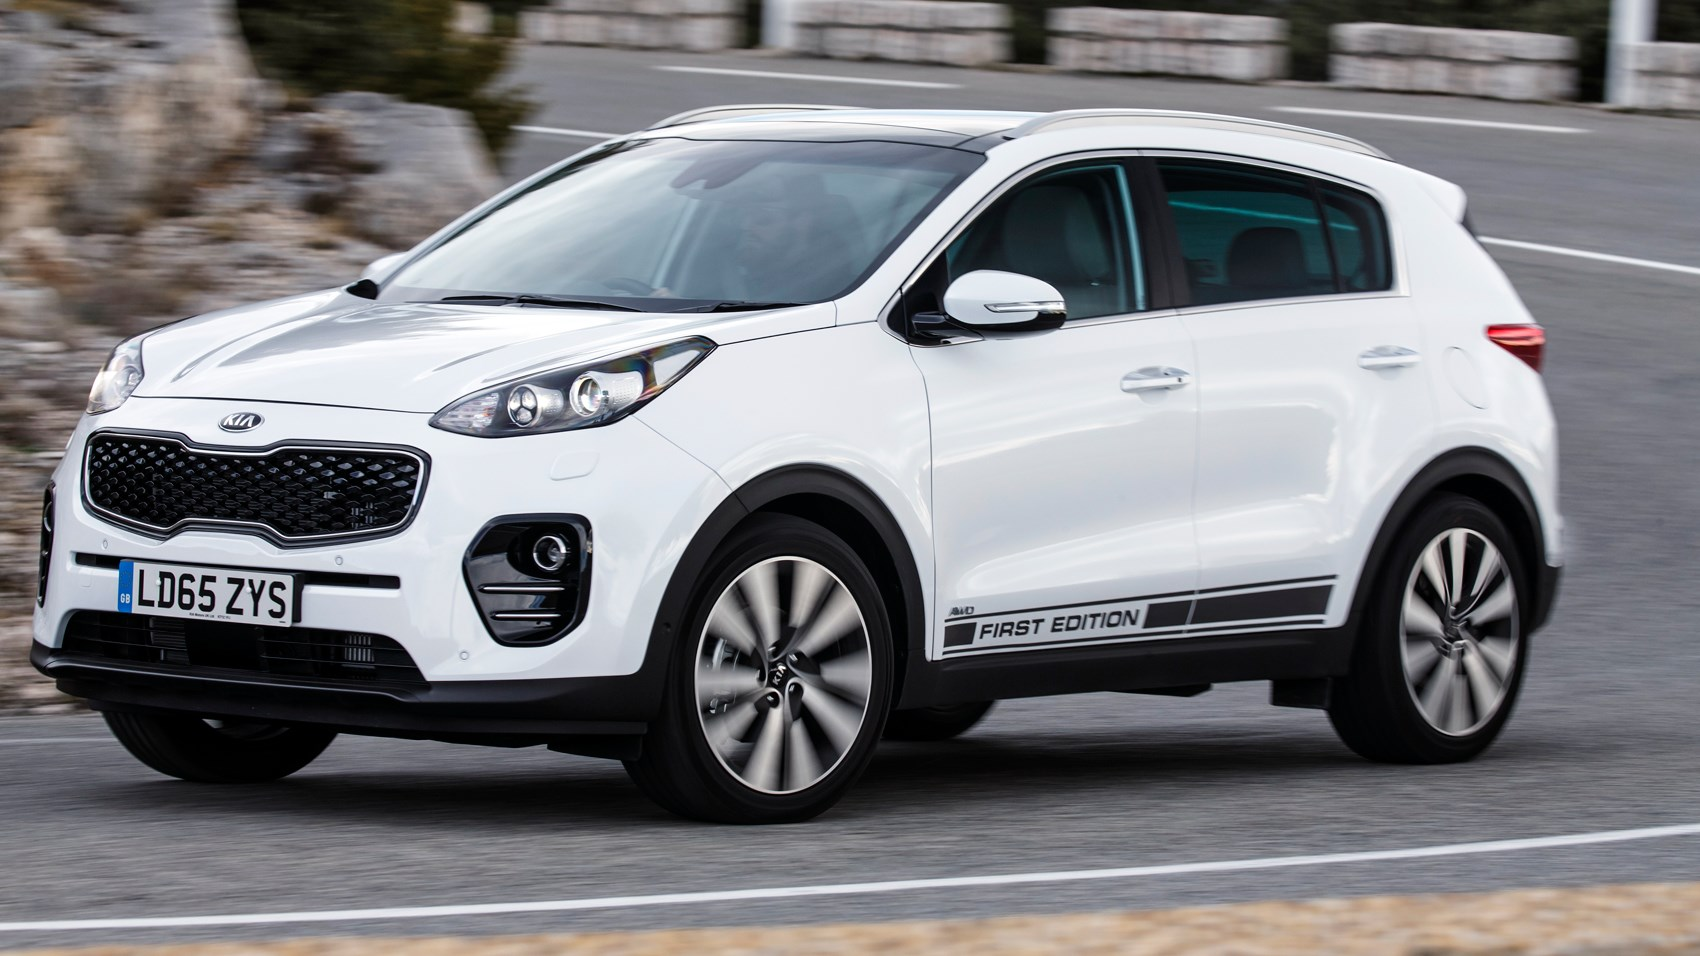 kia sportage first edition 2 0 crdi 2016 review by car magazine. Black Bedroom Furniture Sets. Home Design Ideas